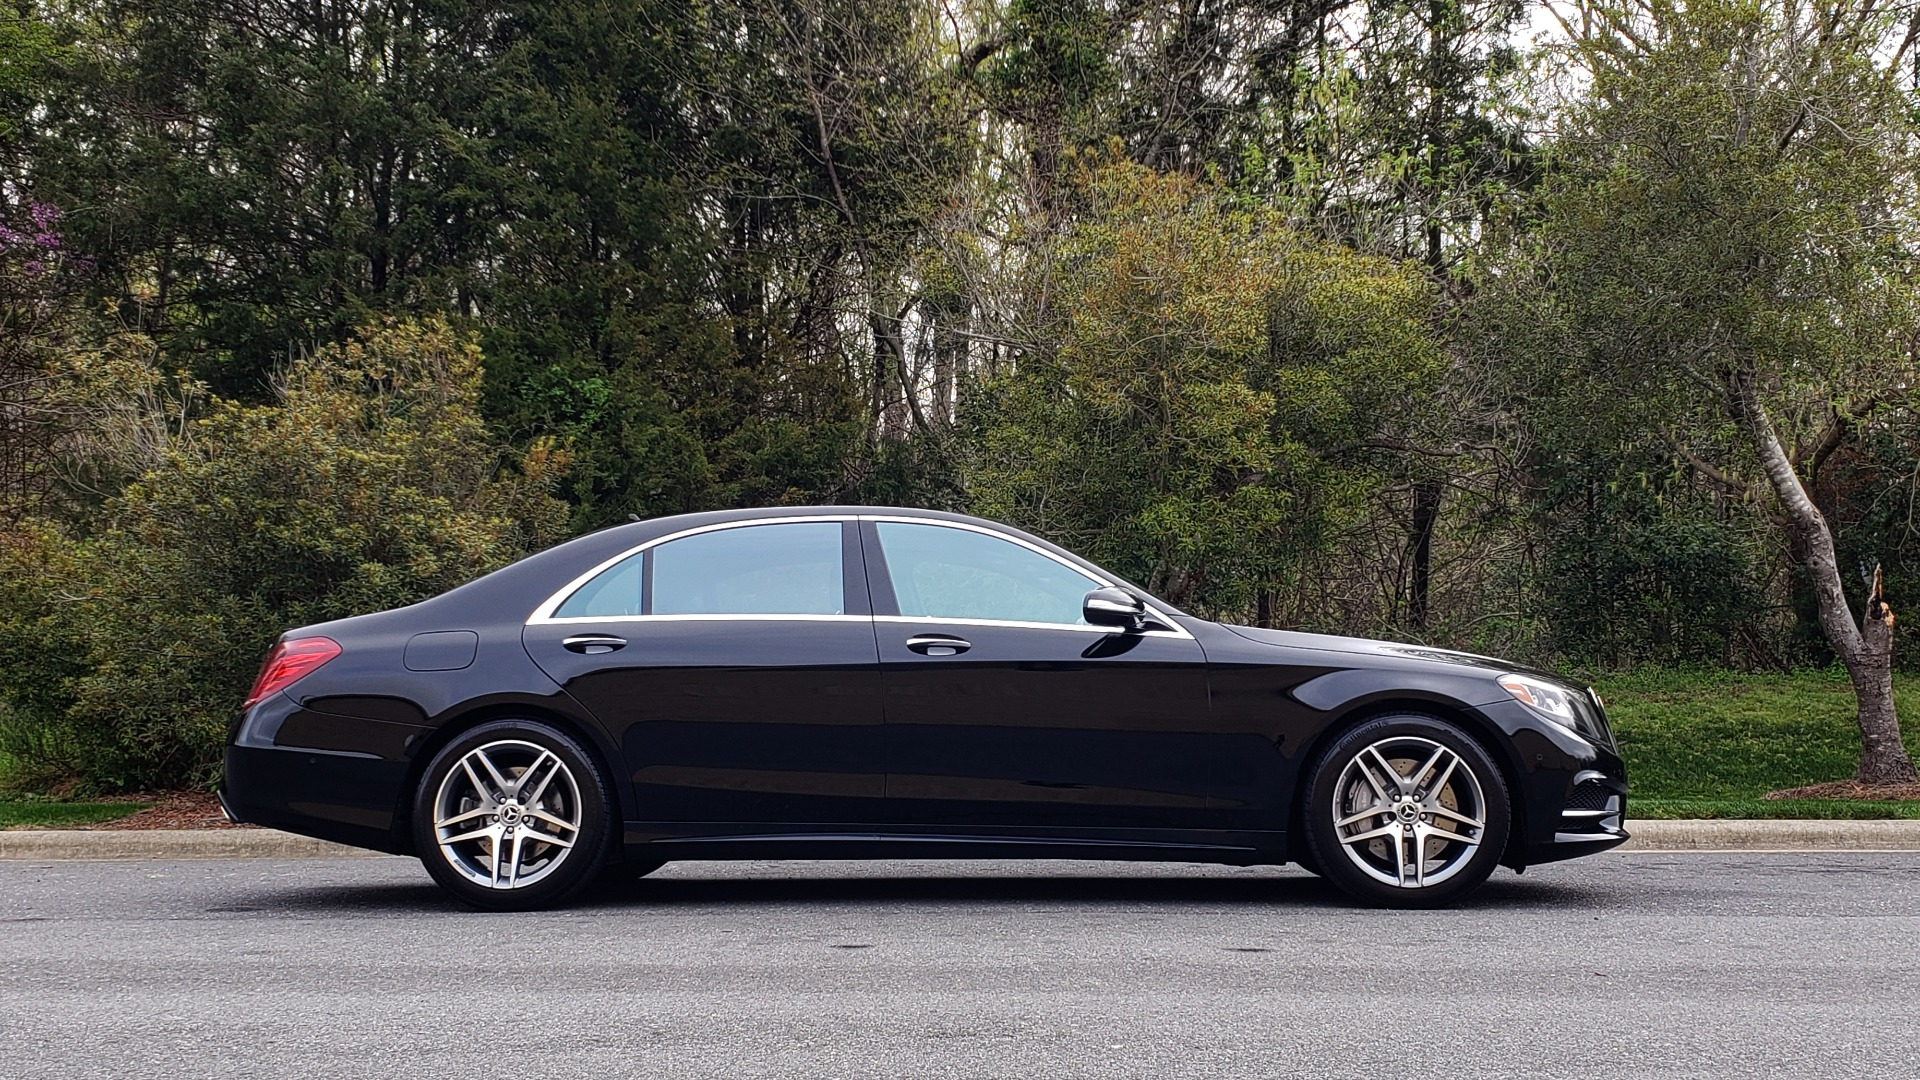 Used 2017 Mercedes-Benz S-CLASS S 550 4MATIC SPORT / PREM PKG / WARMTH & COMFORT / KEYLESS-GO for sale Sold at Formula Imports in Charlotte NC 28227 5